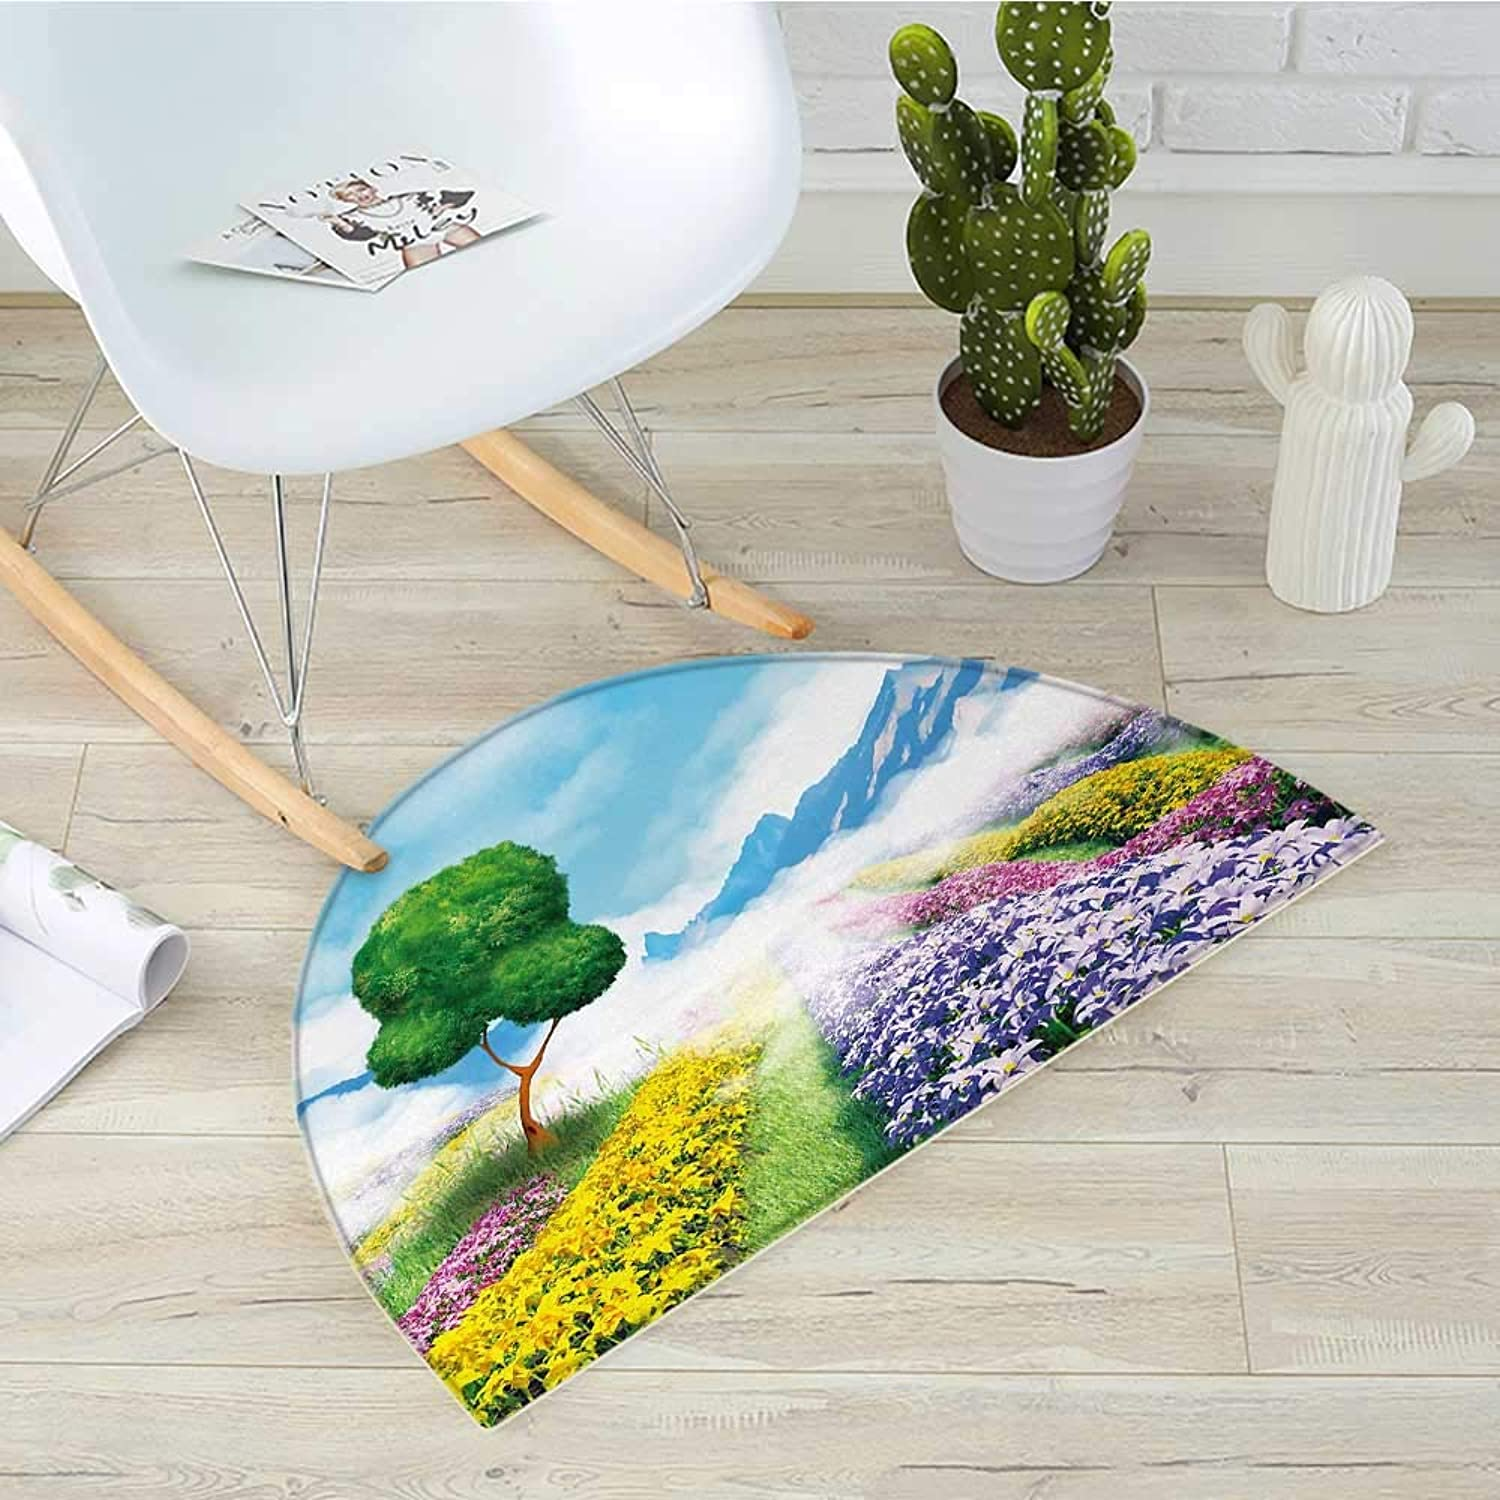 Nature Half Round Door mats Print Cartoon Style Scenery of Flowers Trees Gardens and Mountains Artwork Print Bathroom Mat H 43.3  xD 64.9  Multicolor